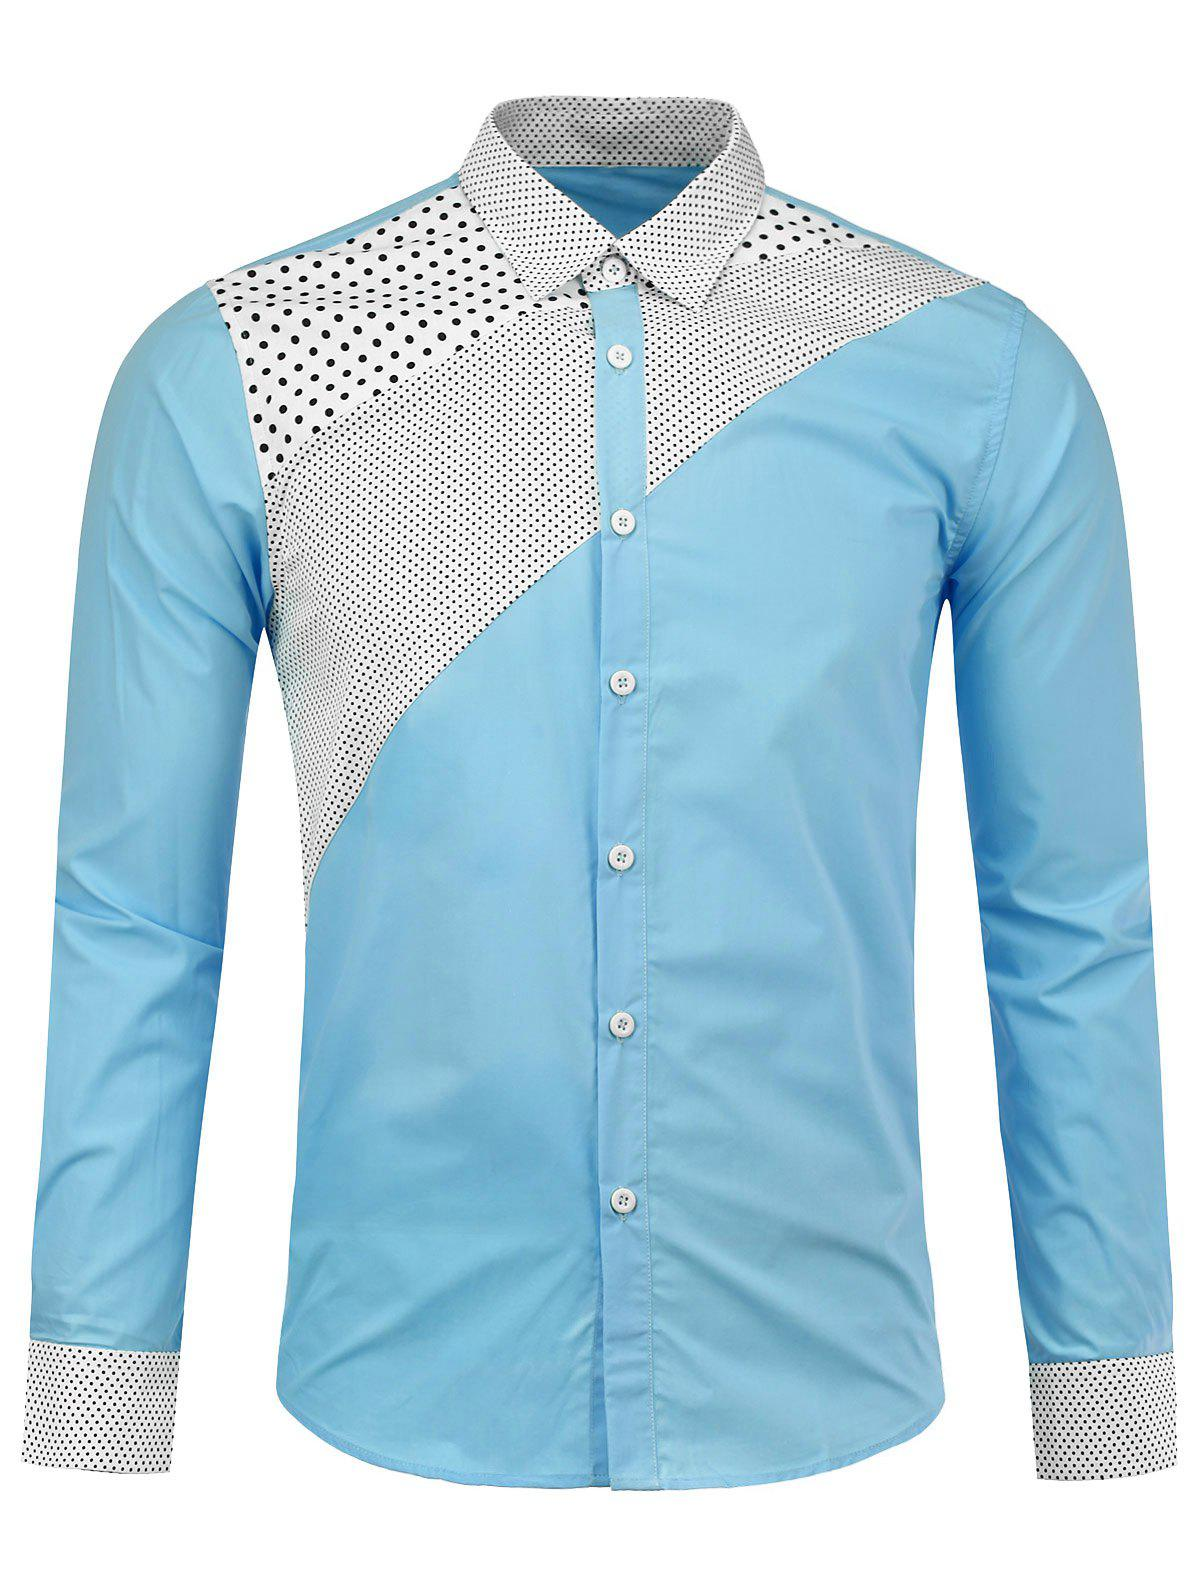 Long Sleeve Polka Dot Insert Shirt - AZURE L